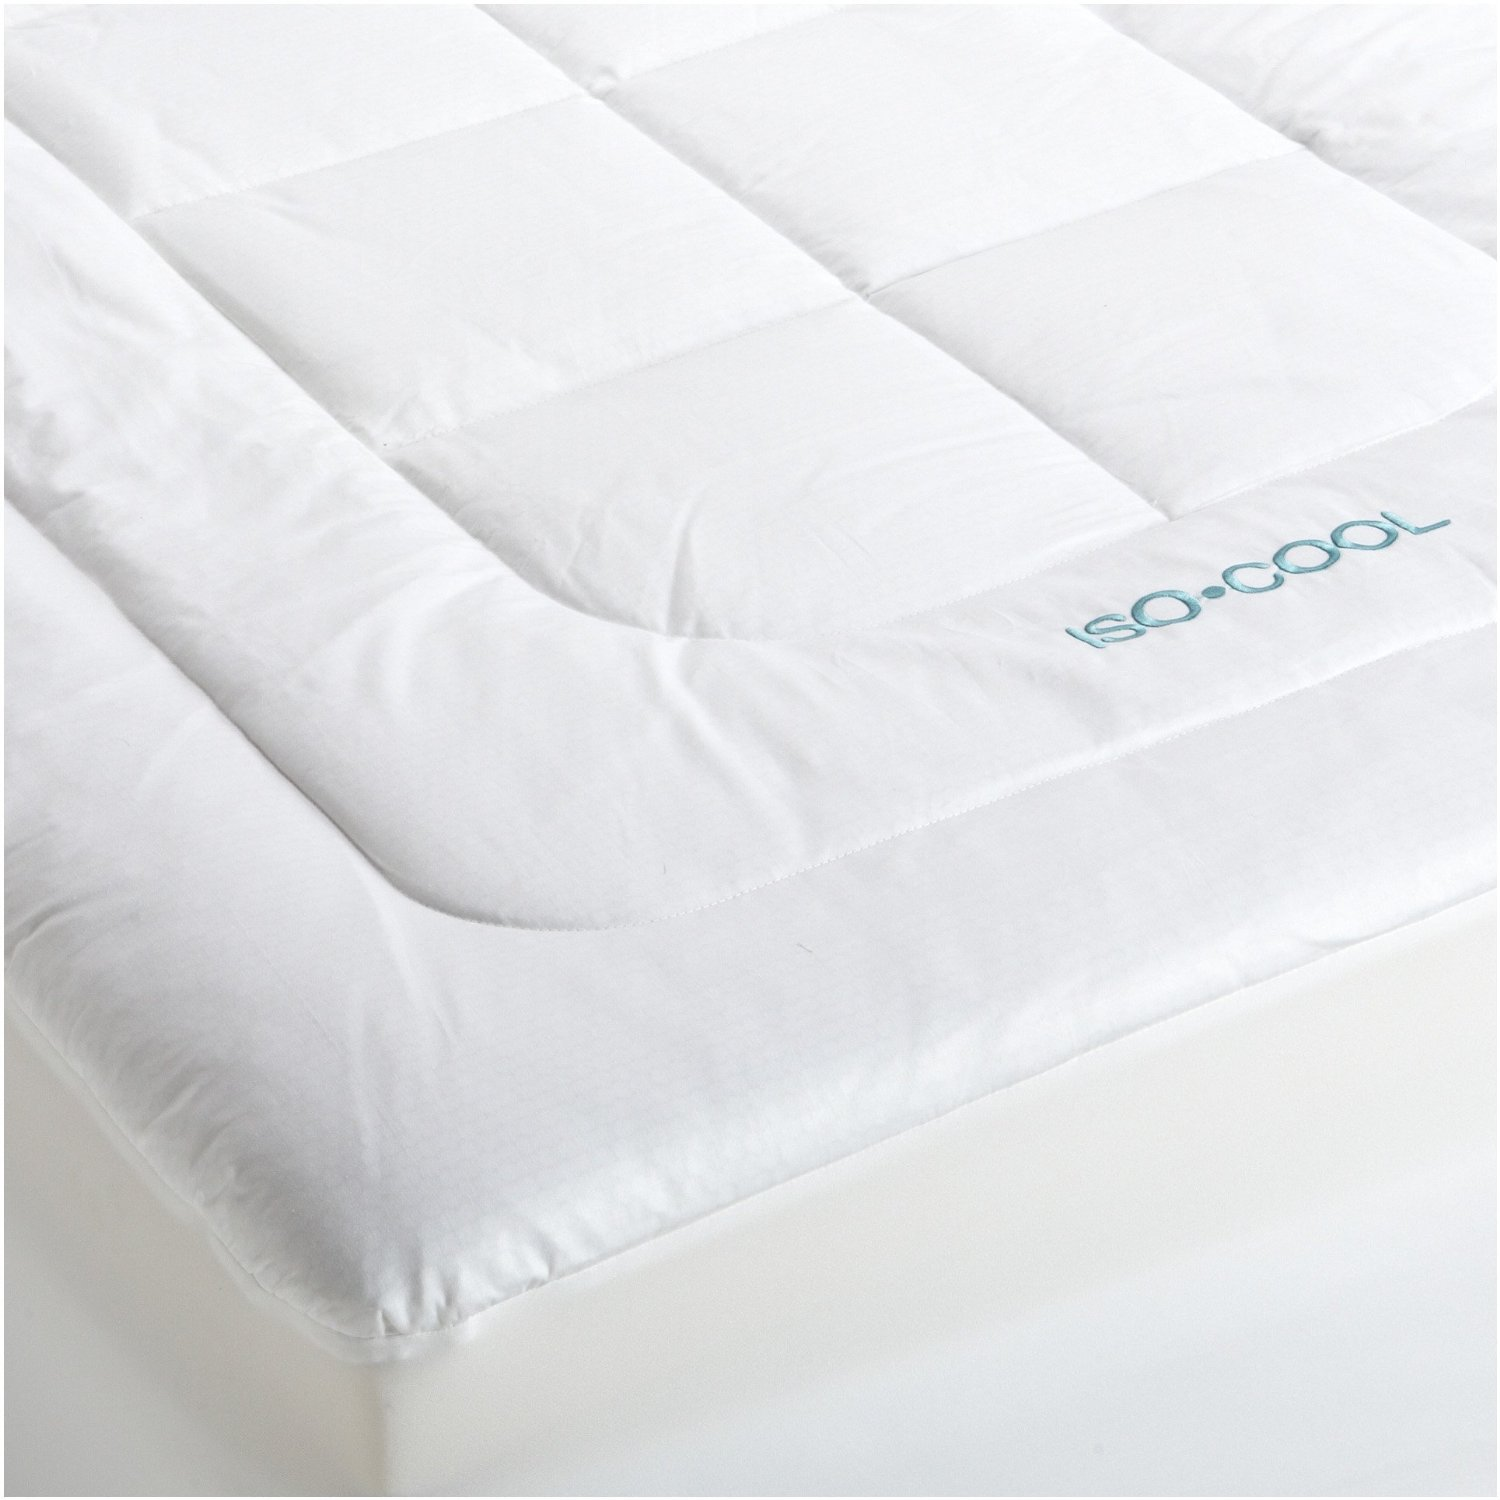 comfy memory side foam size for mattress sleepers image inspirations rated best onlinebest sleeper of thicknessbest pricebest queen topper full reviews tempurpedic foamessesses gel